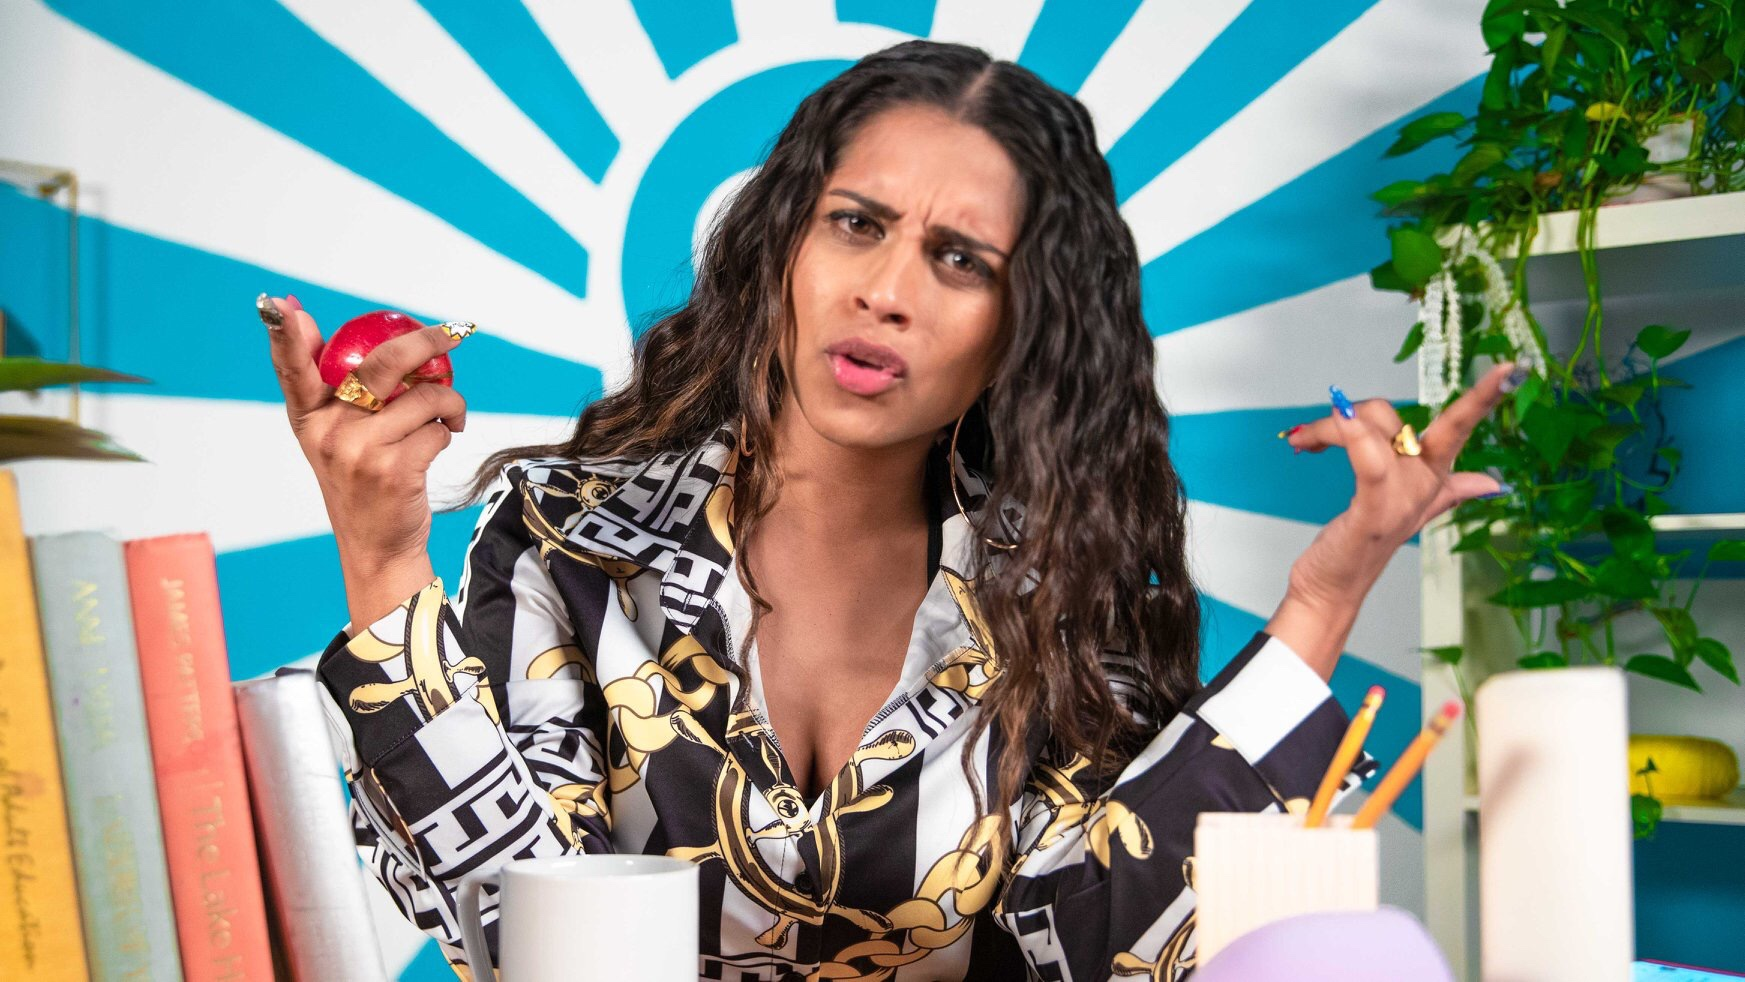 Lilly Singh to Host New Late Night Show on NBC